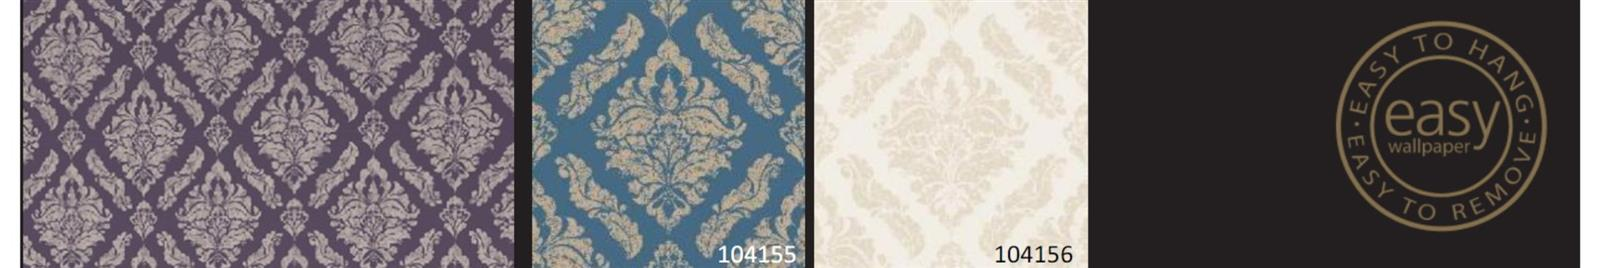 Vermeil Boutique Wallpaper